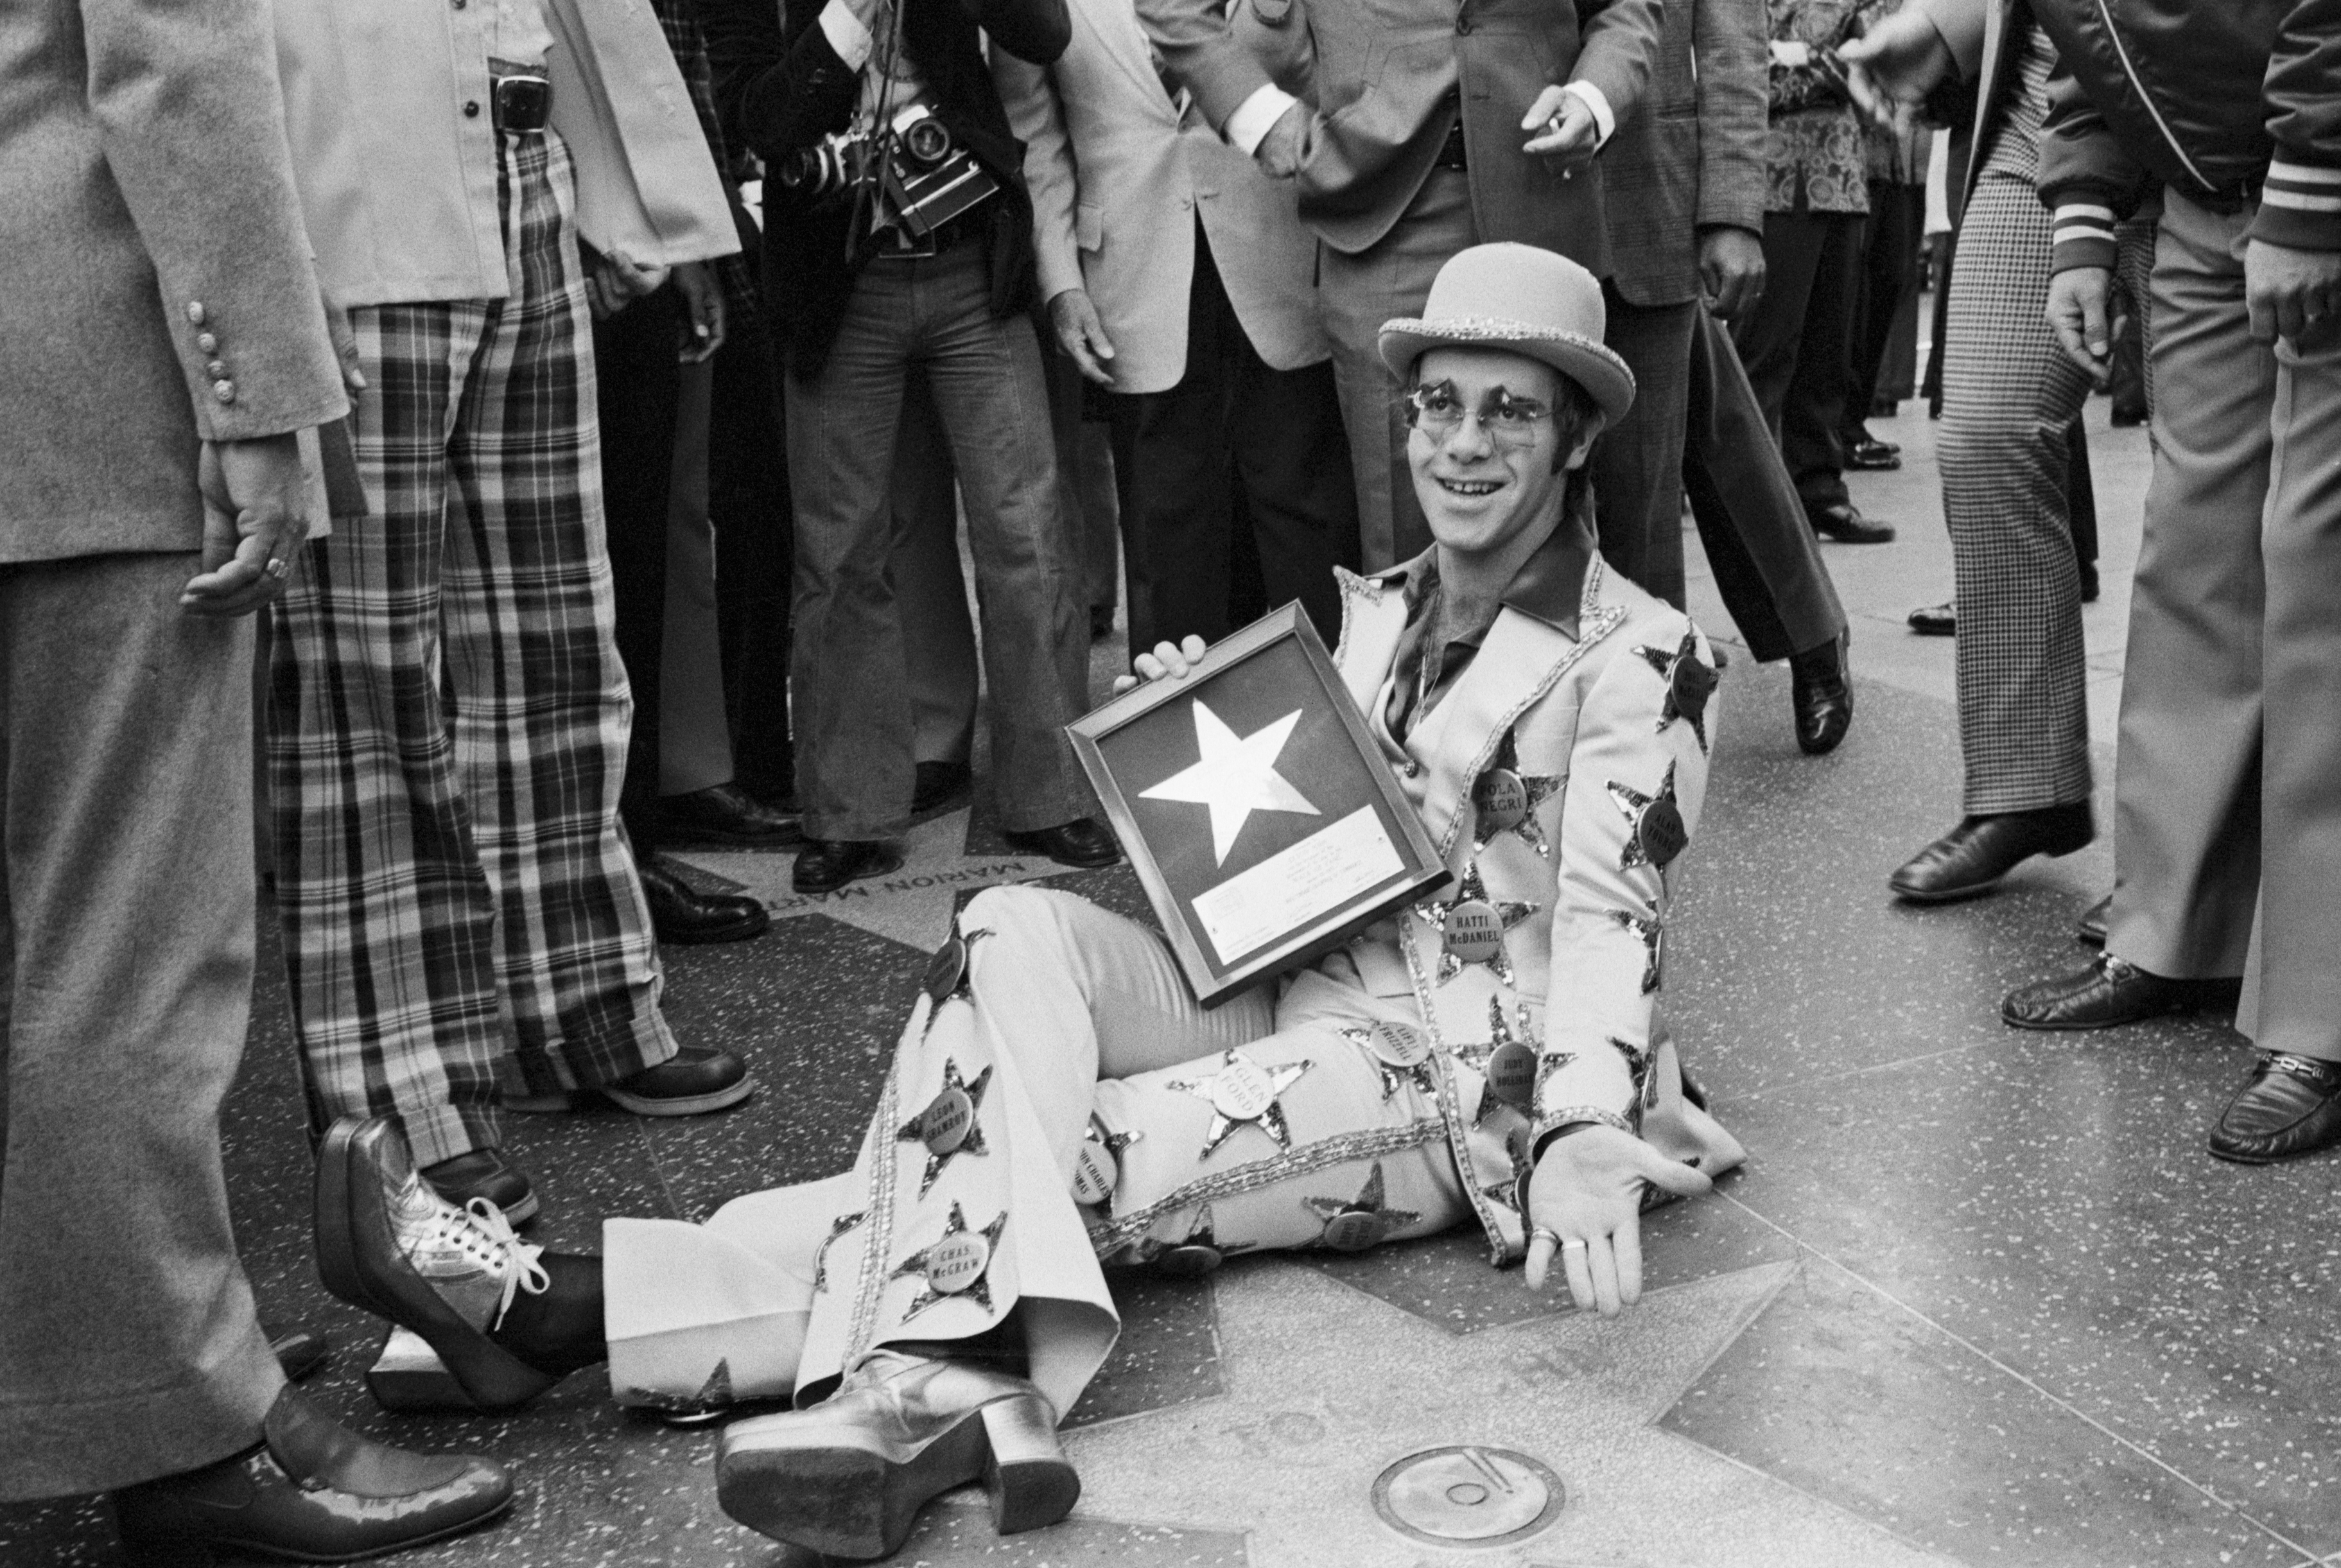 Elton John poses alongside his star on the Hollywood Walk of Fame in Los Angeles on Oct. 24, 1975.